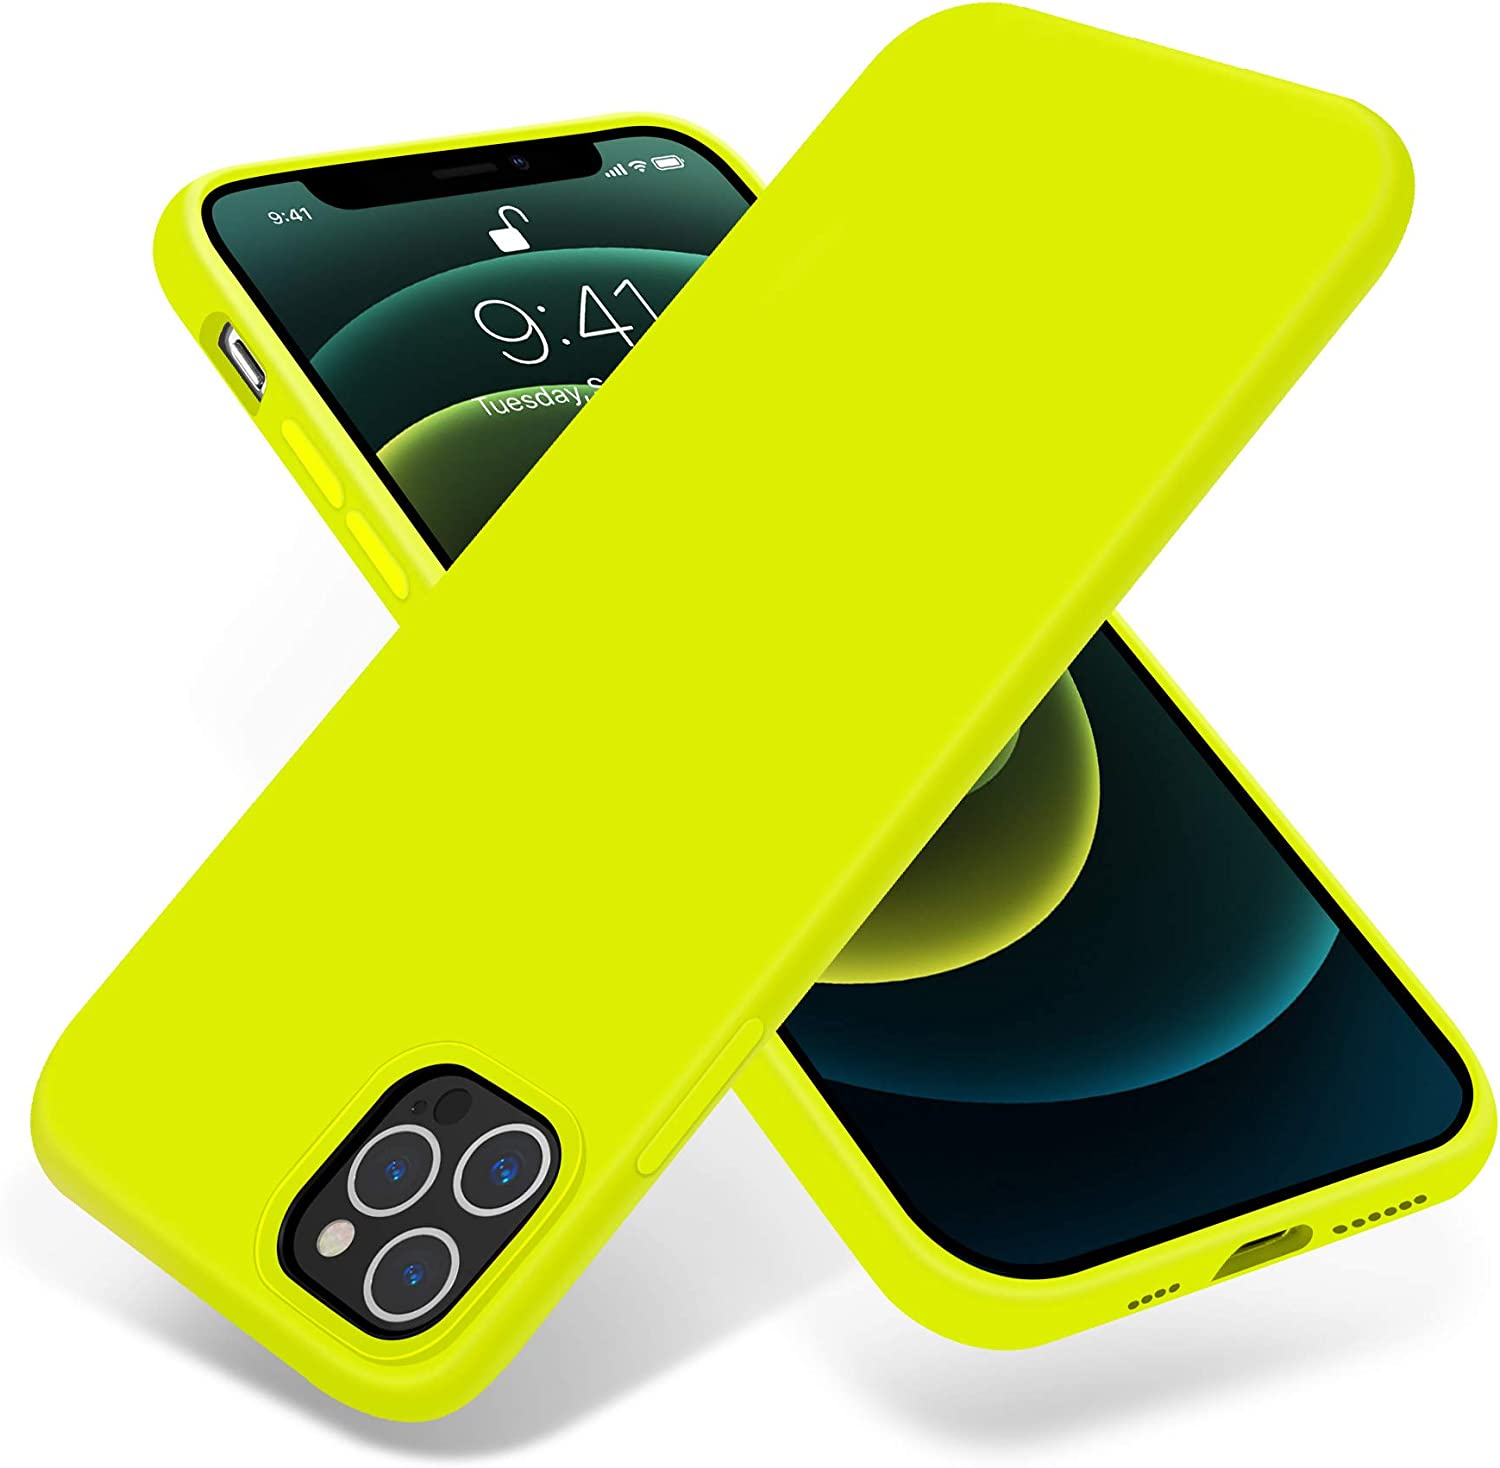 OTOFLY Compatible with iPhone 12 Pro Max Case 6.7 inch(2020),[Silky and Soft Touch Series]Premium Soft Liquid Silicone Rubber Full-Body Protective Bumper Case for iPhone 12 Pro Max(Fluorescent Yellow)